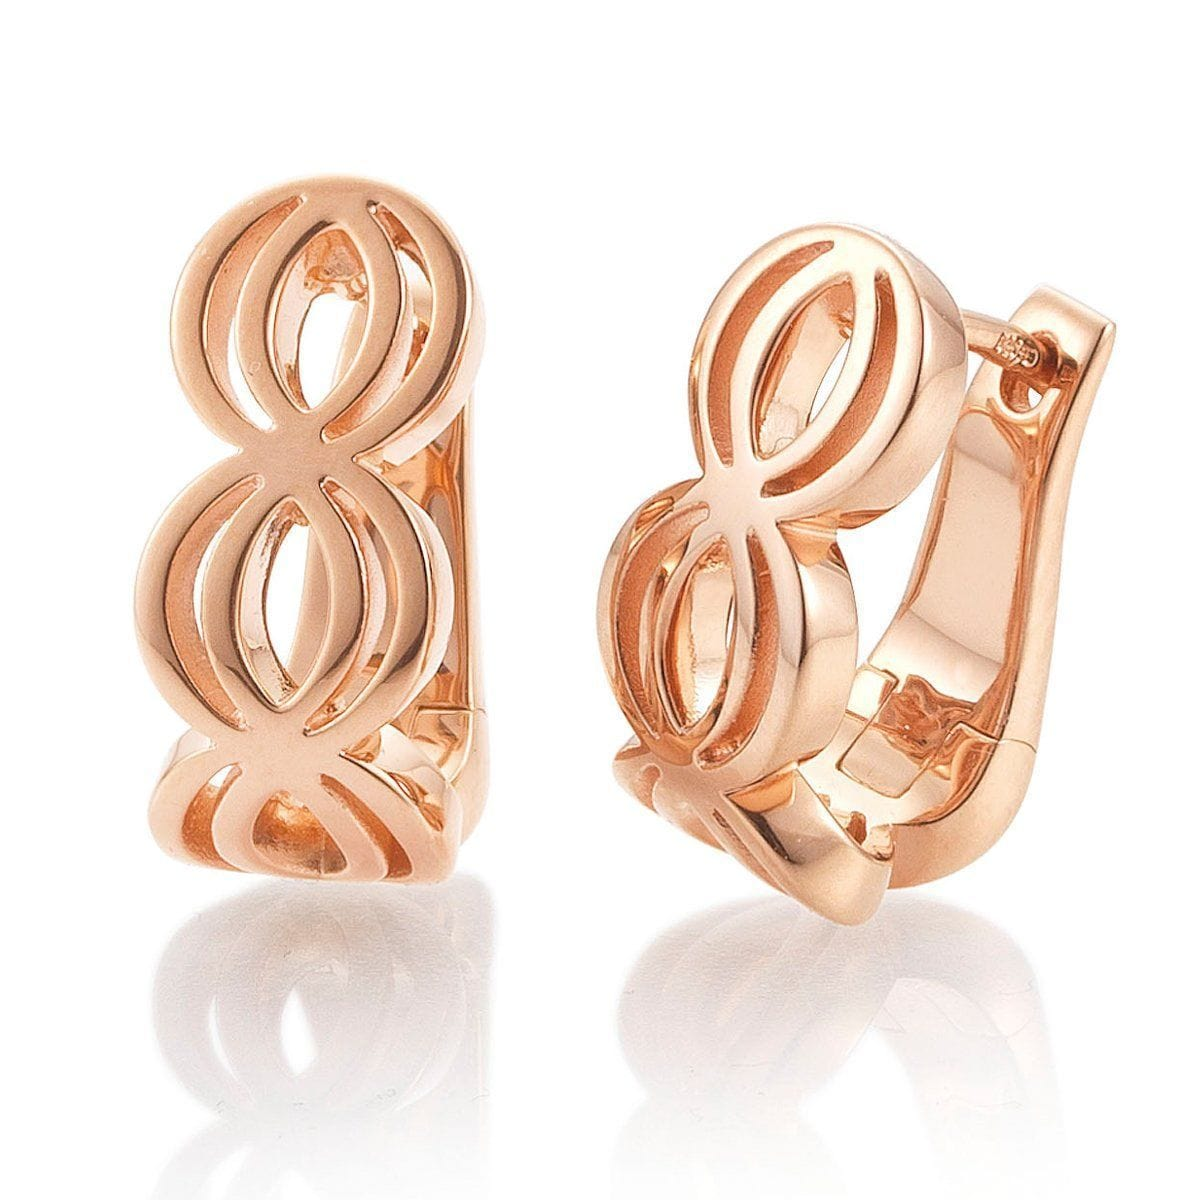 Rose Gold Plated Sterling Silver Earrings - 06/60793-Breuning-Renee Taylor Gallery